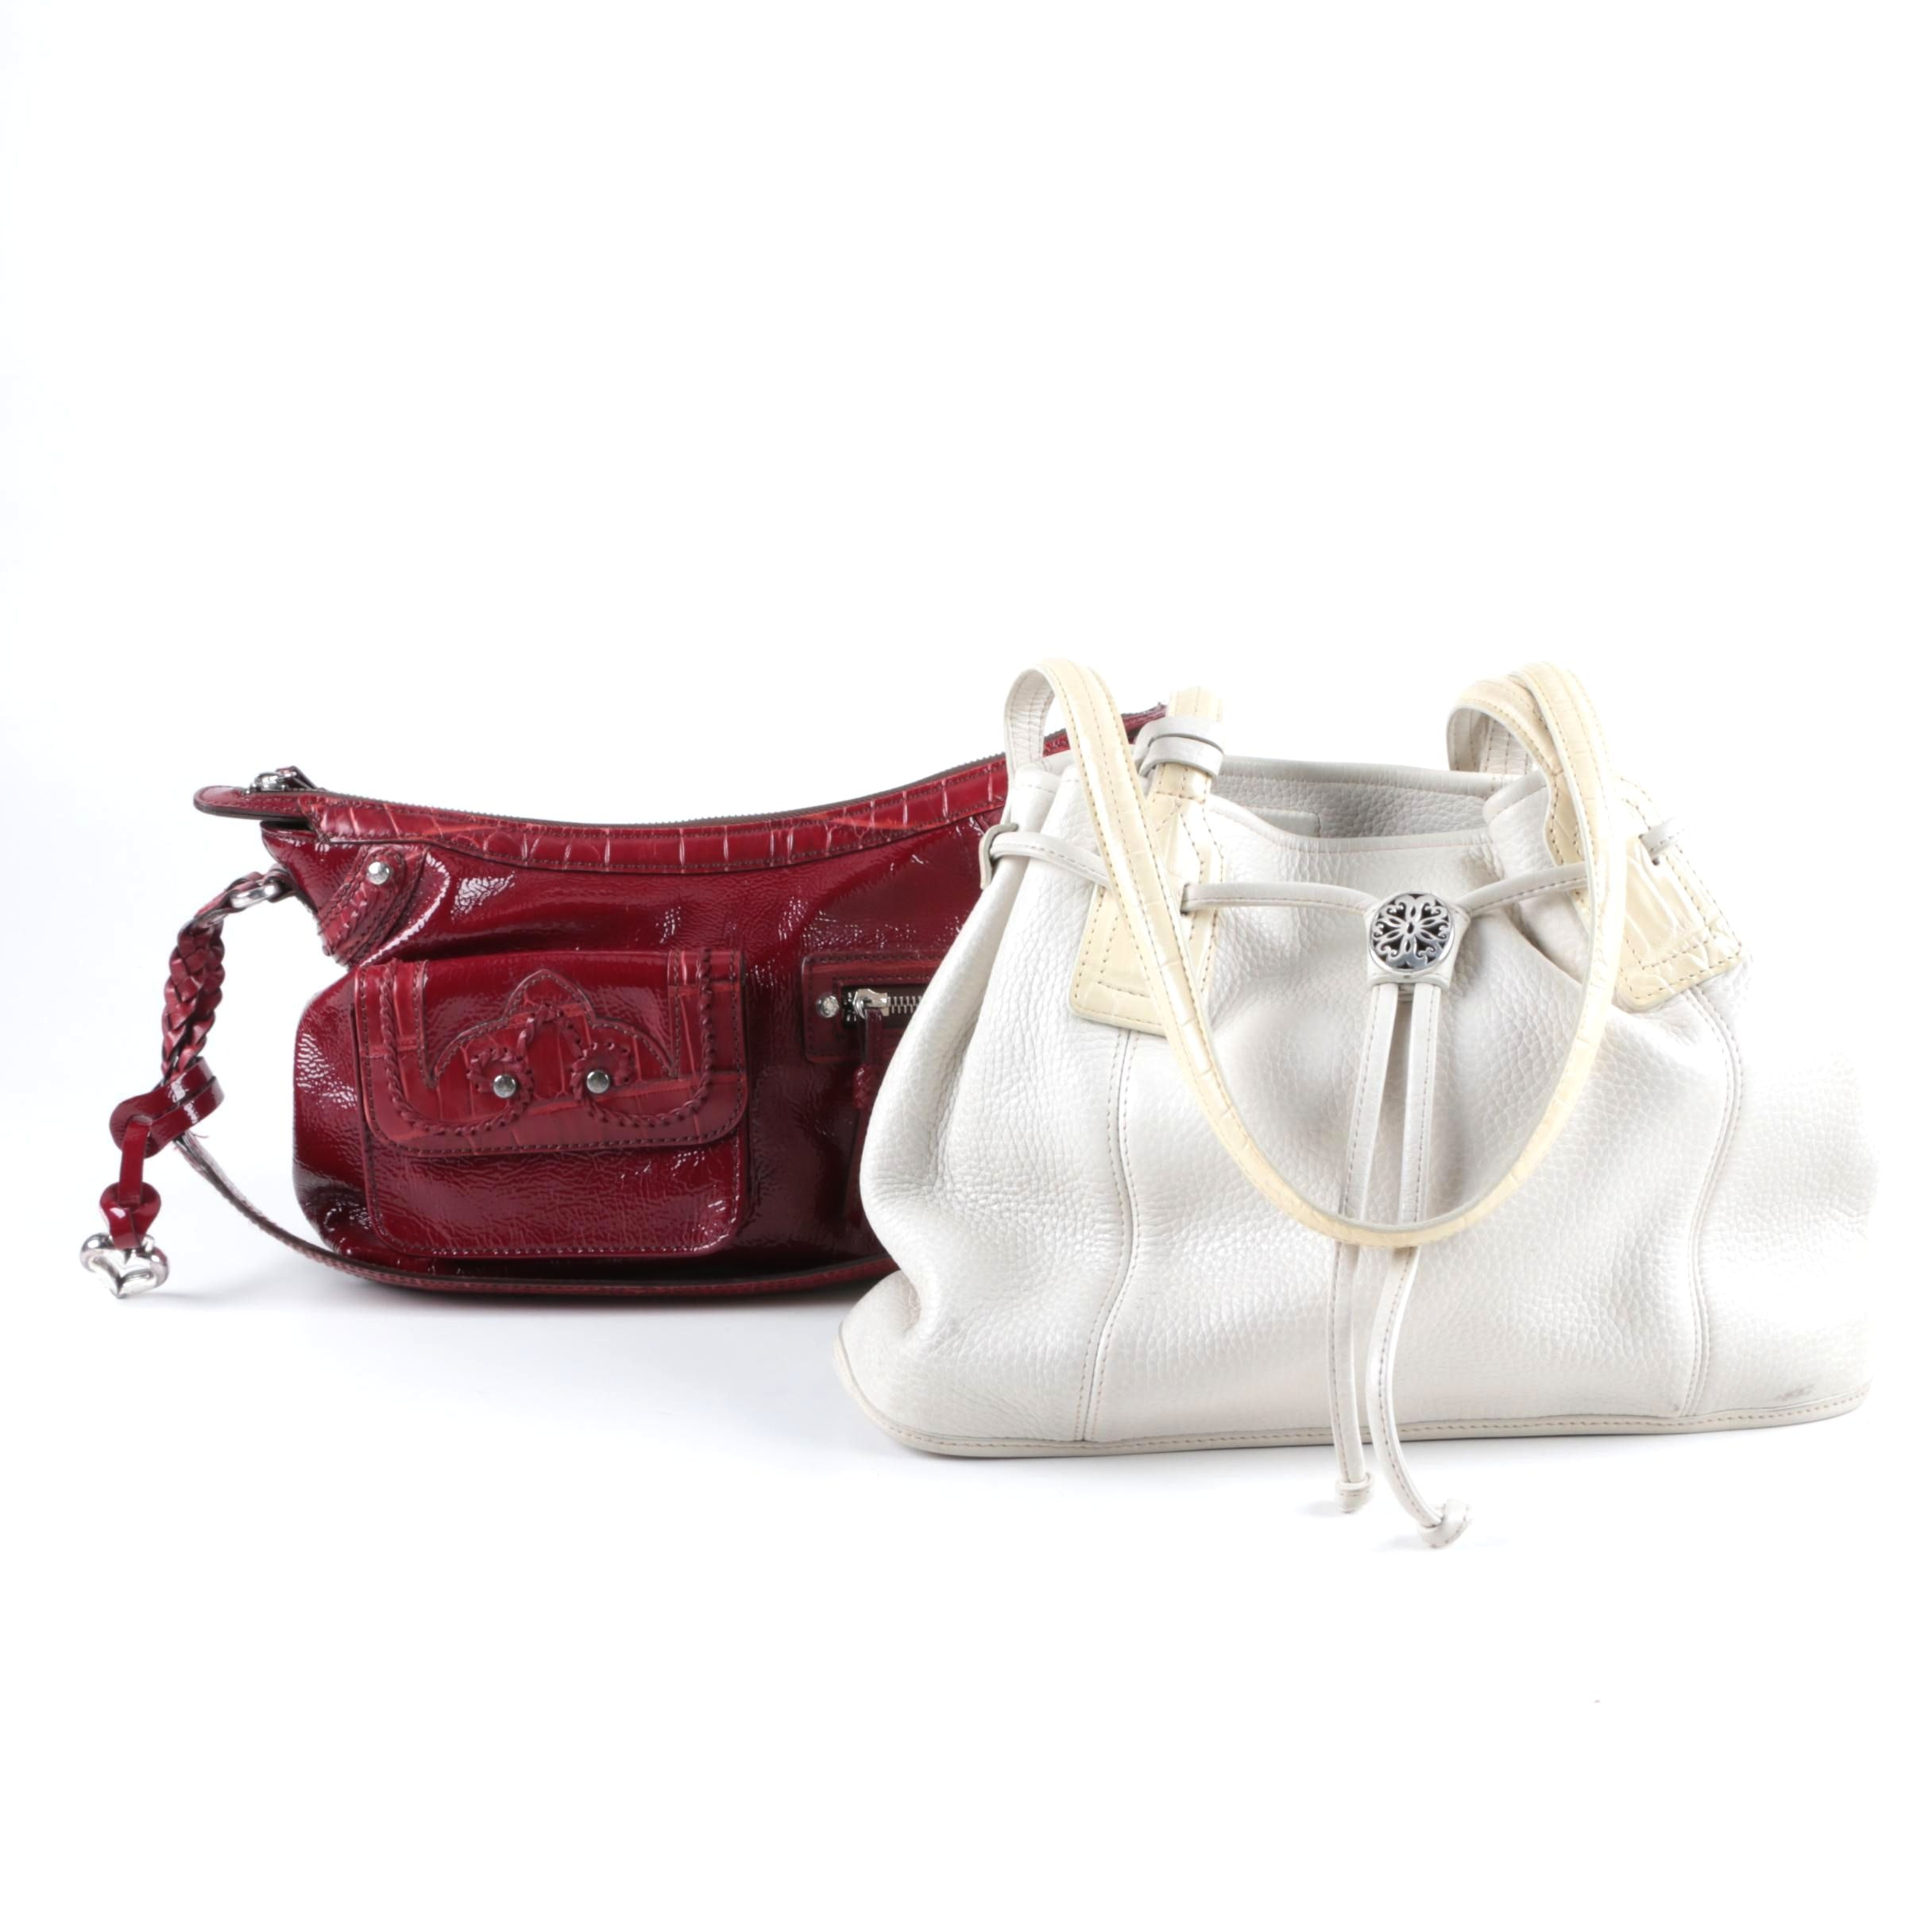 Two Brighton Leather Handbags